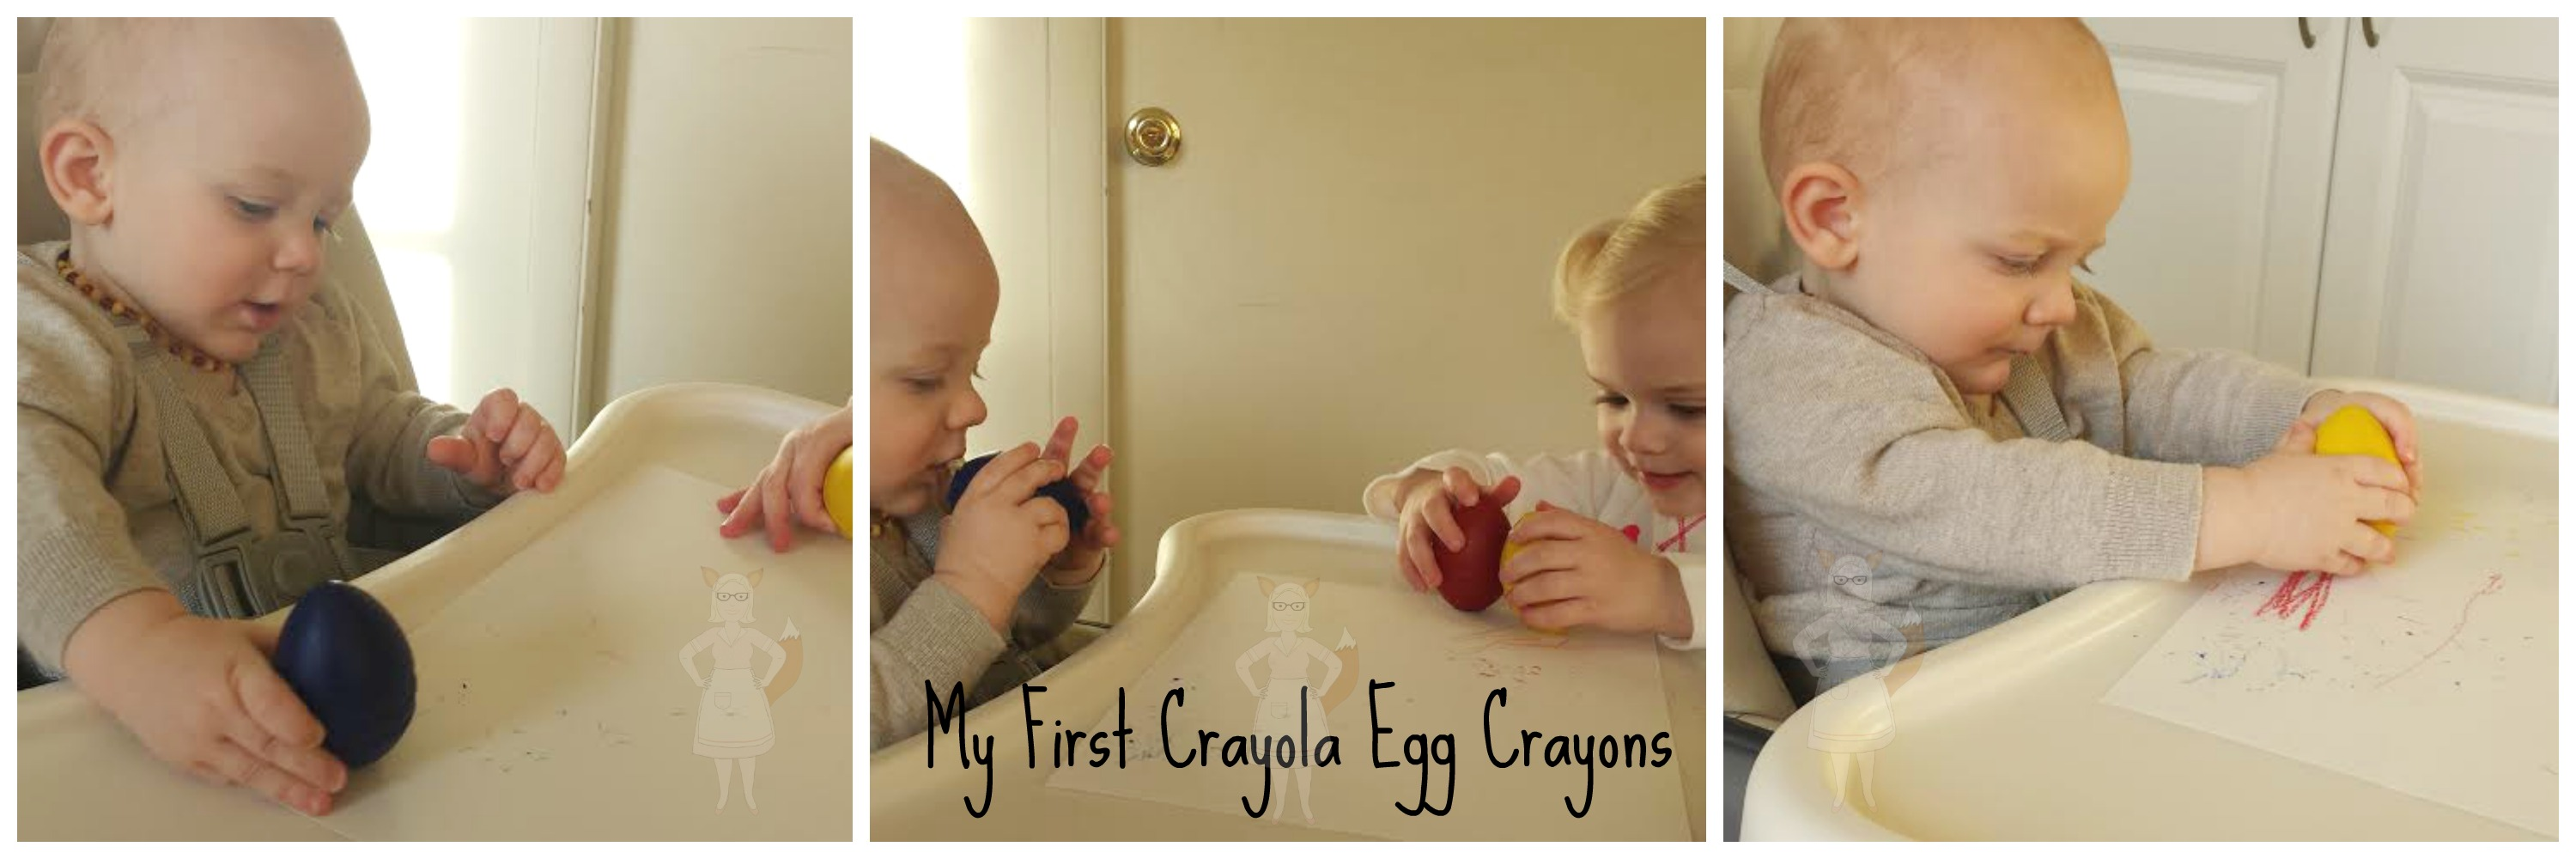 My First Crayola Egg Crayon